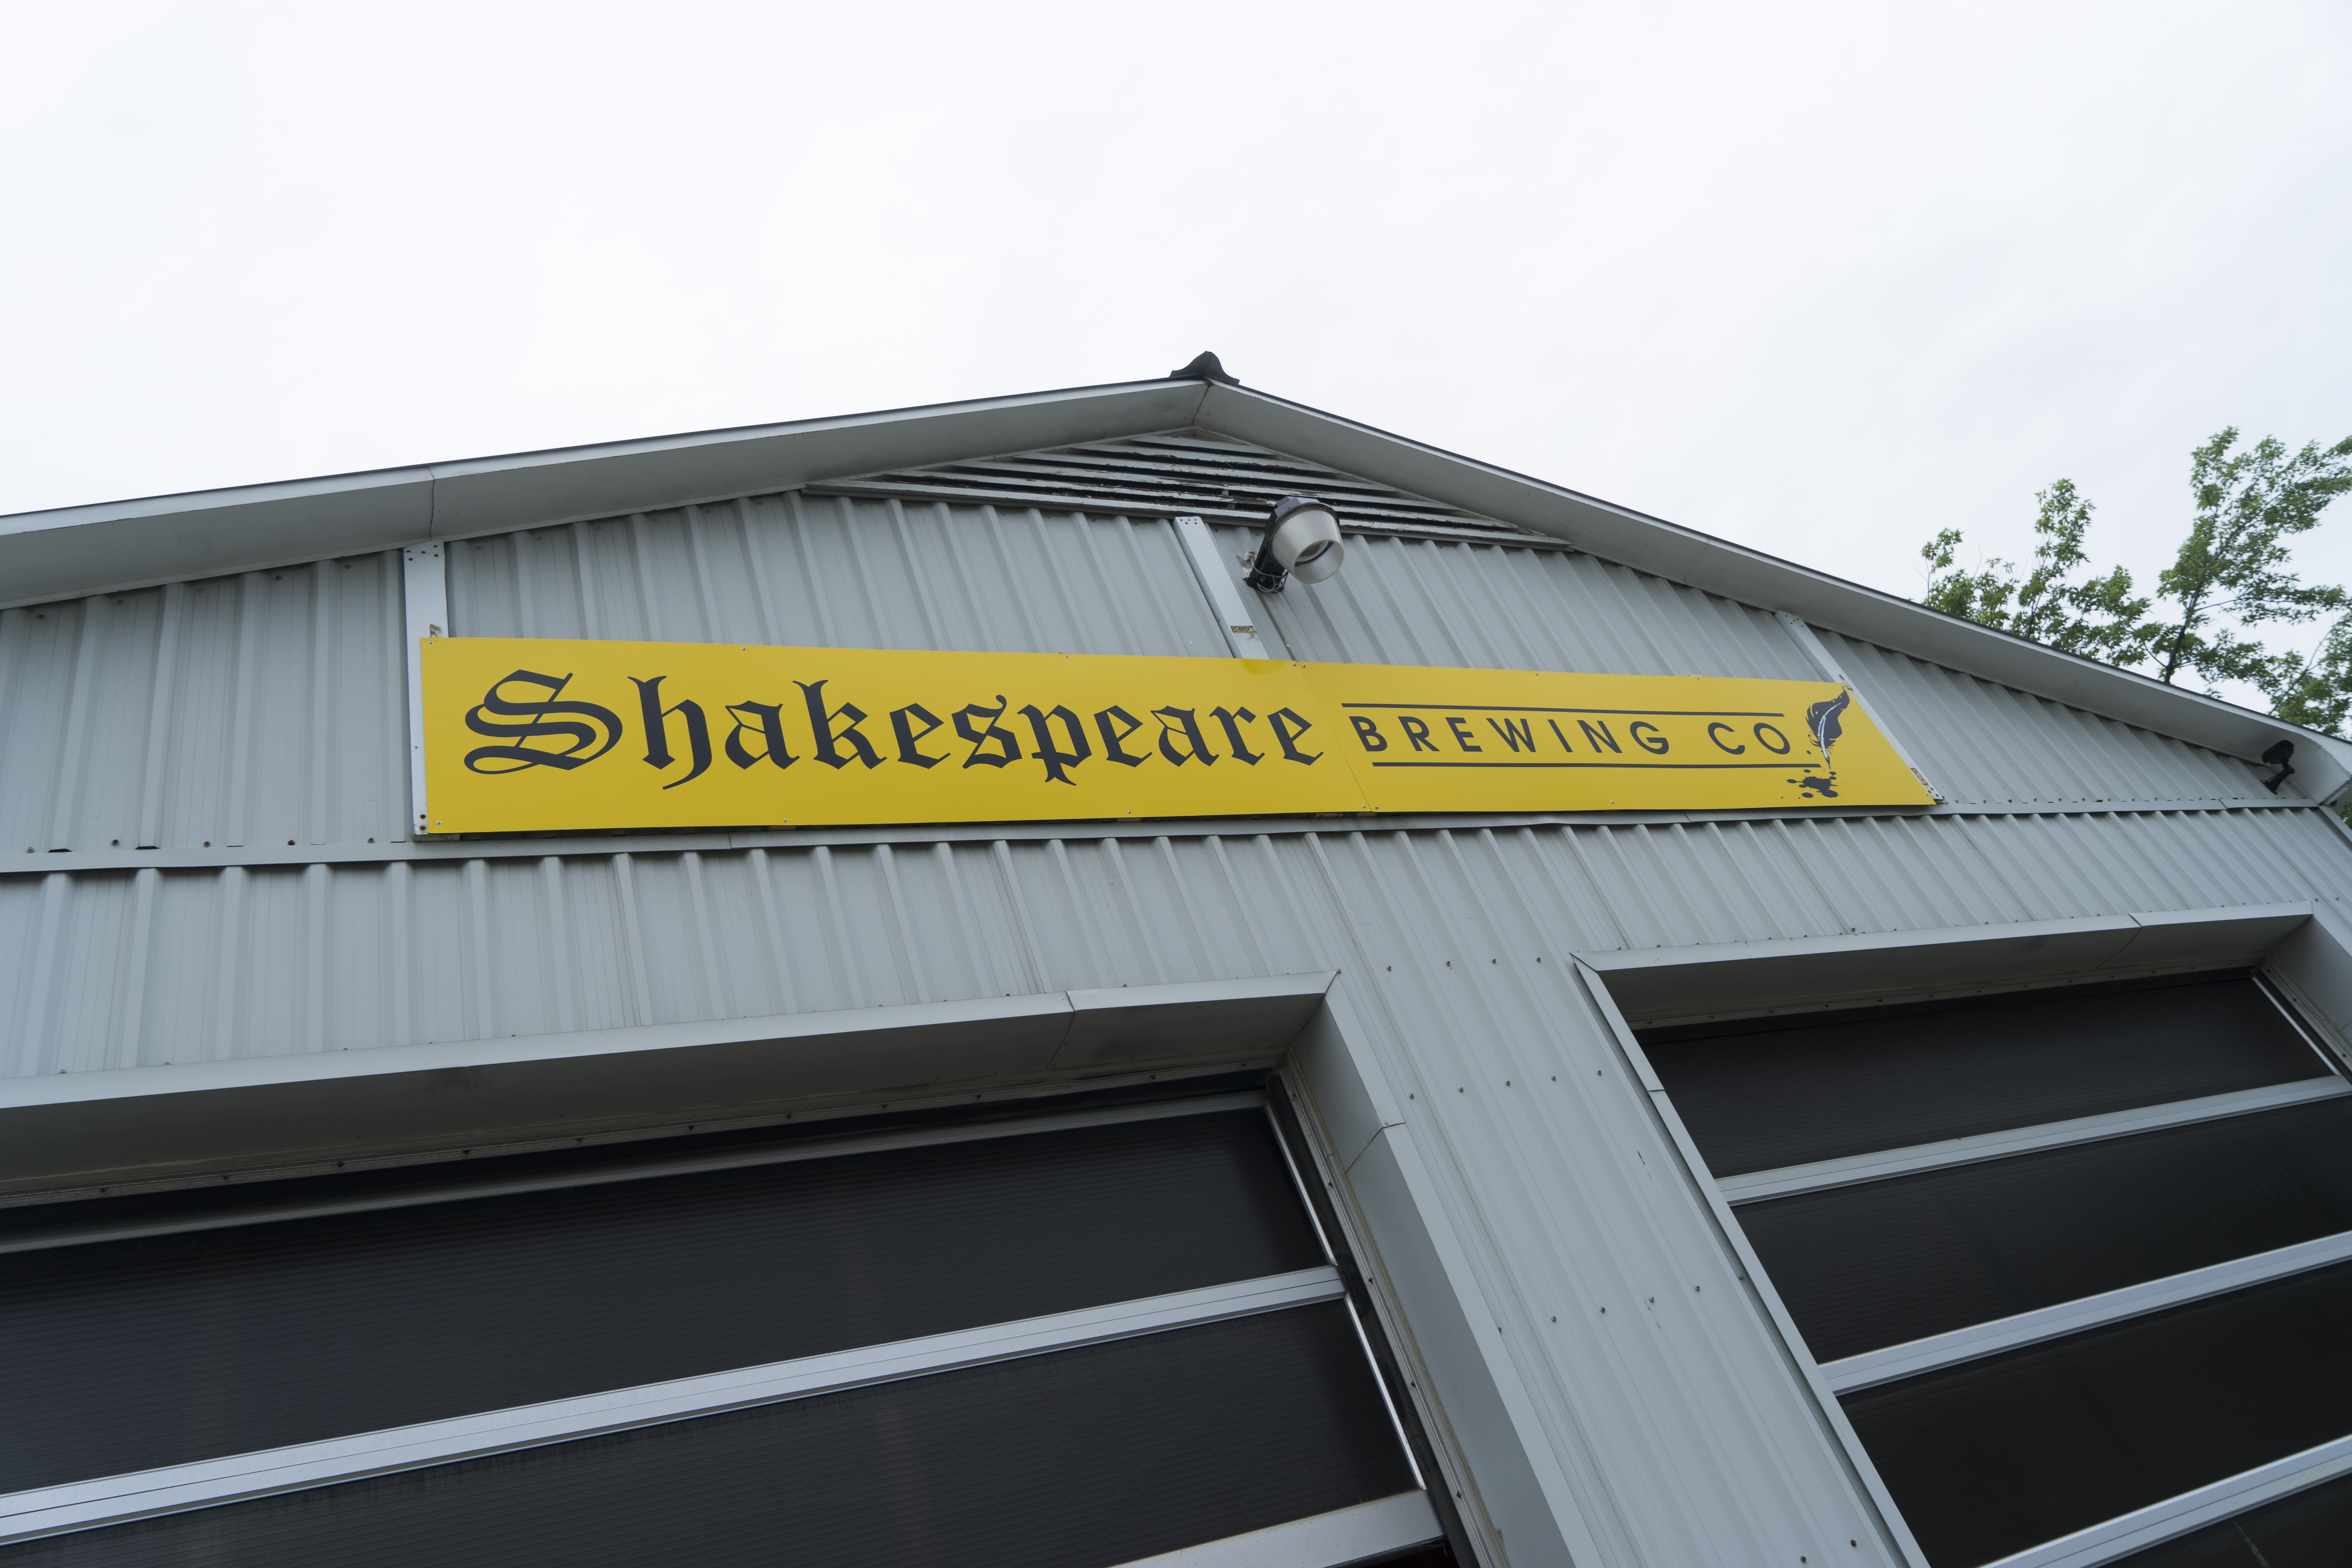 Shakespeare Brewing Company image 1